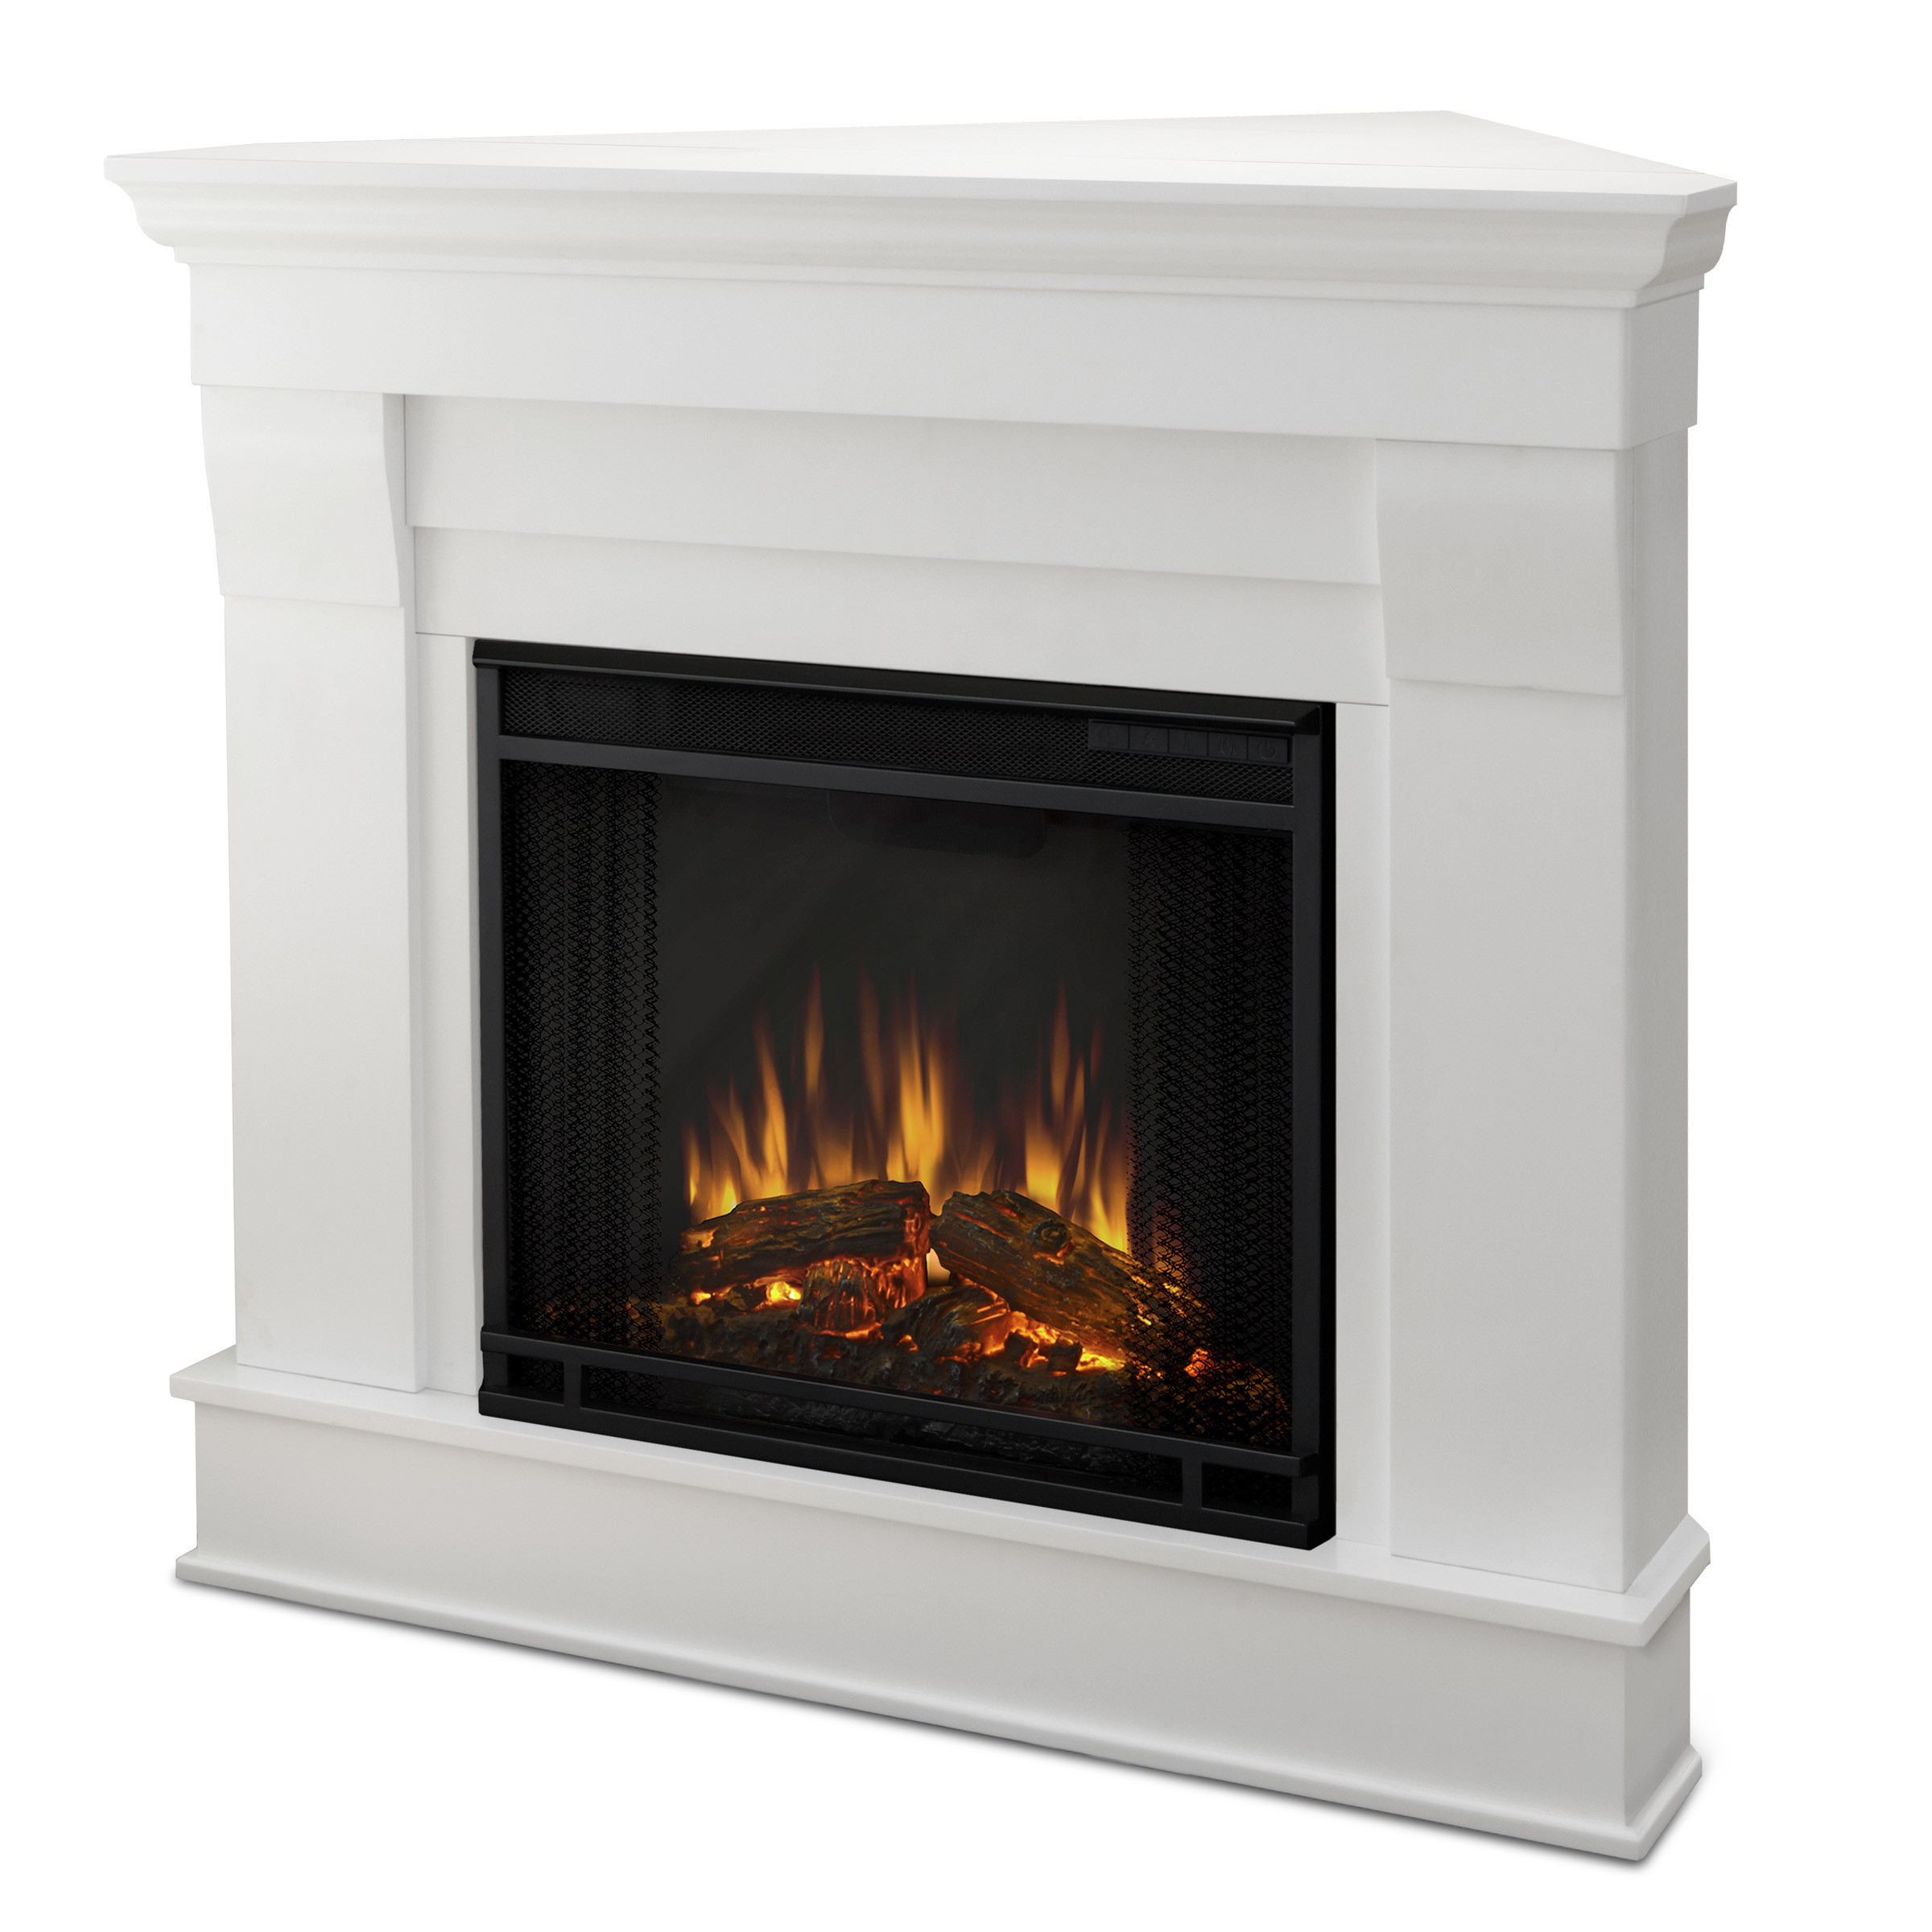 Best ideas about Real Flame Fireplace . Save or Pin Real Flame Chateau Corner Electric Fireplace & Reviews Now.